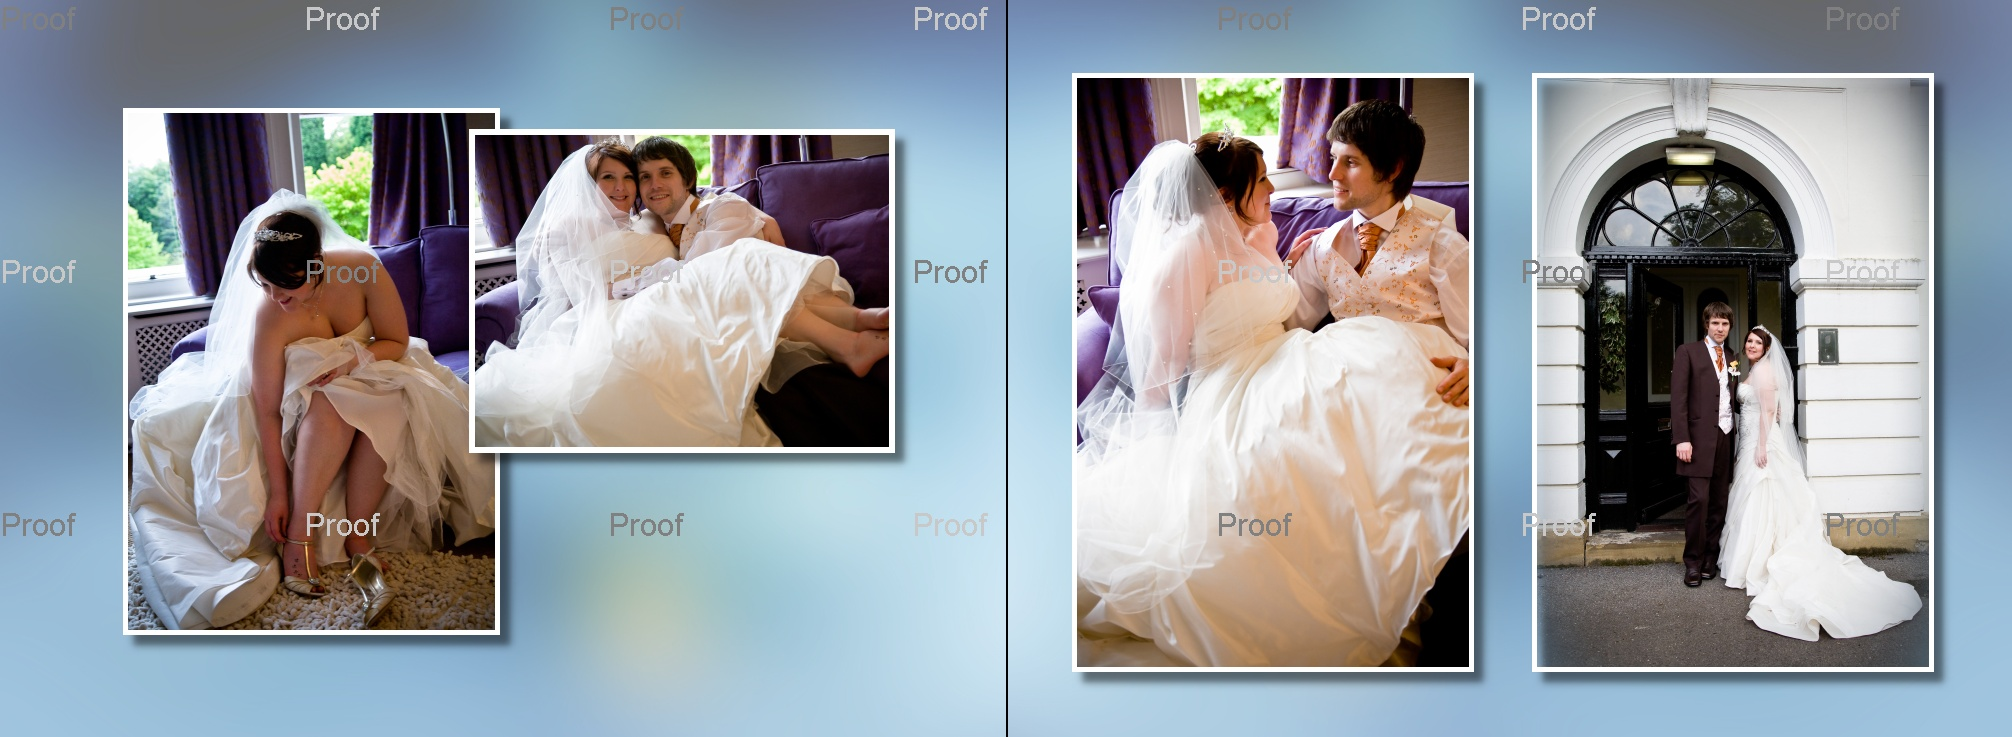 pages 72-73 wedding storybook album with pictures of bride and groom in Manchester